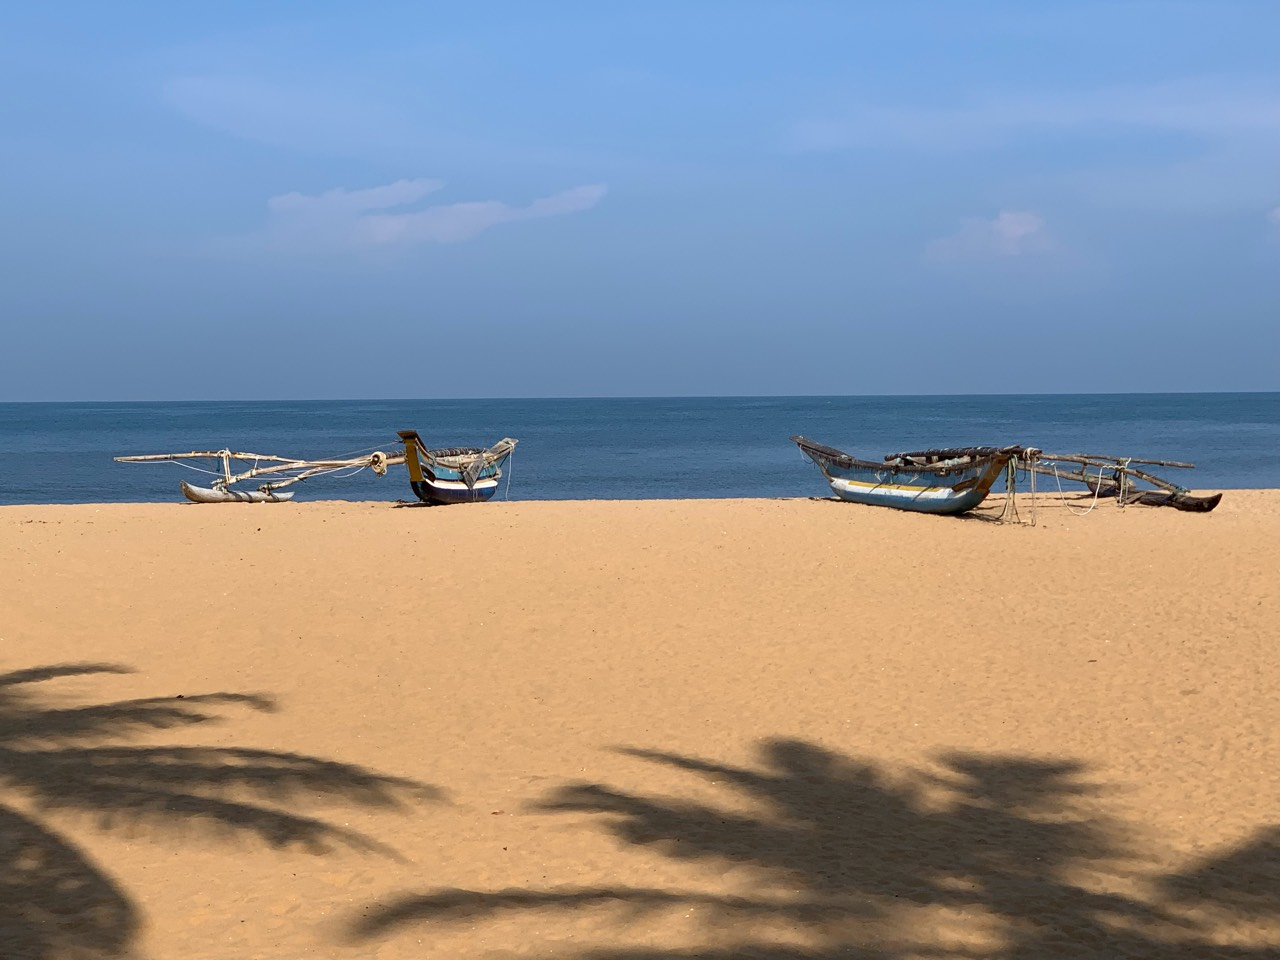 Farewell Sri Lanka, at least for now.